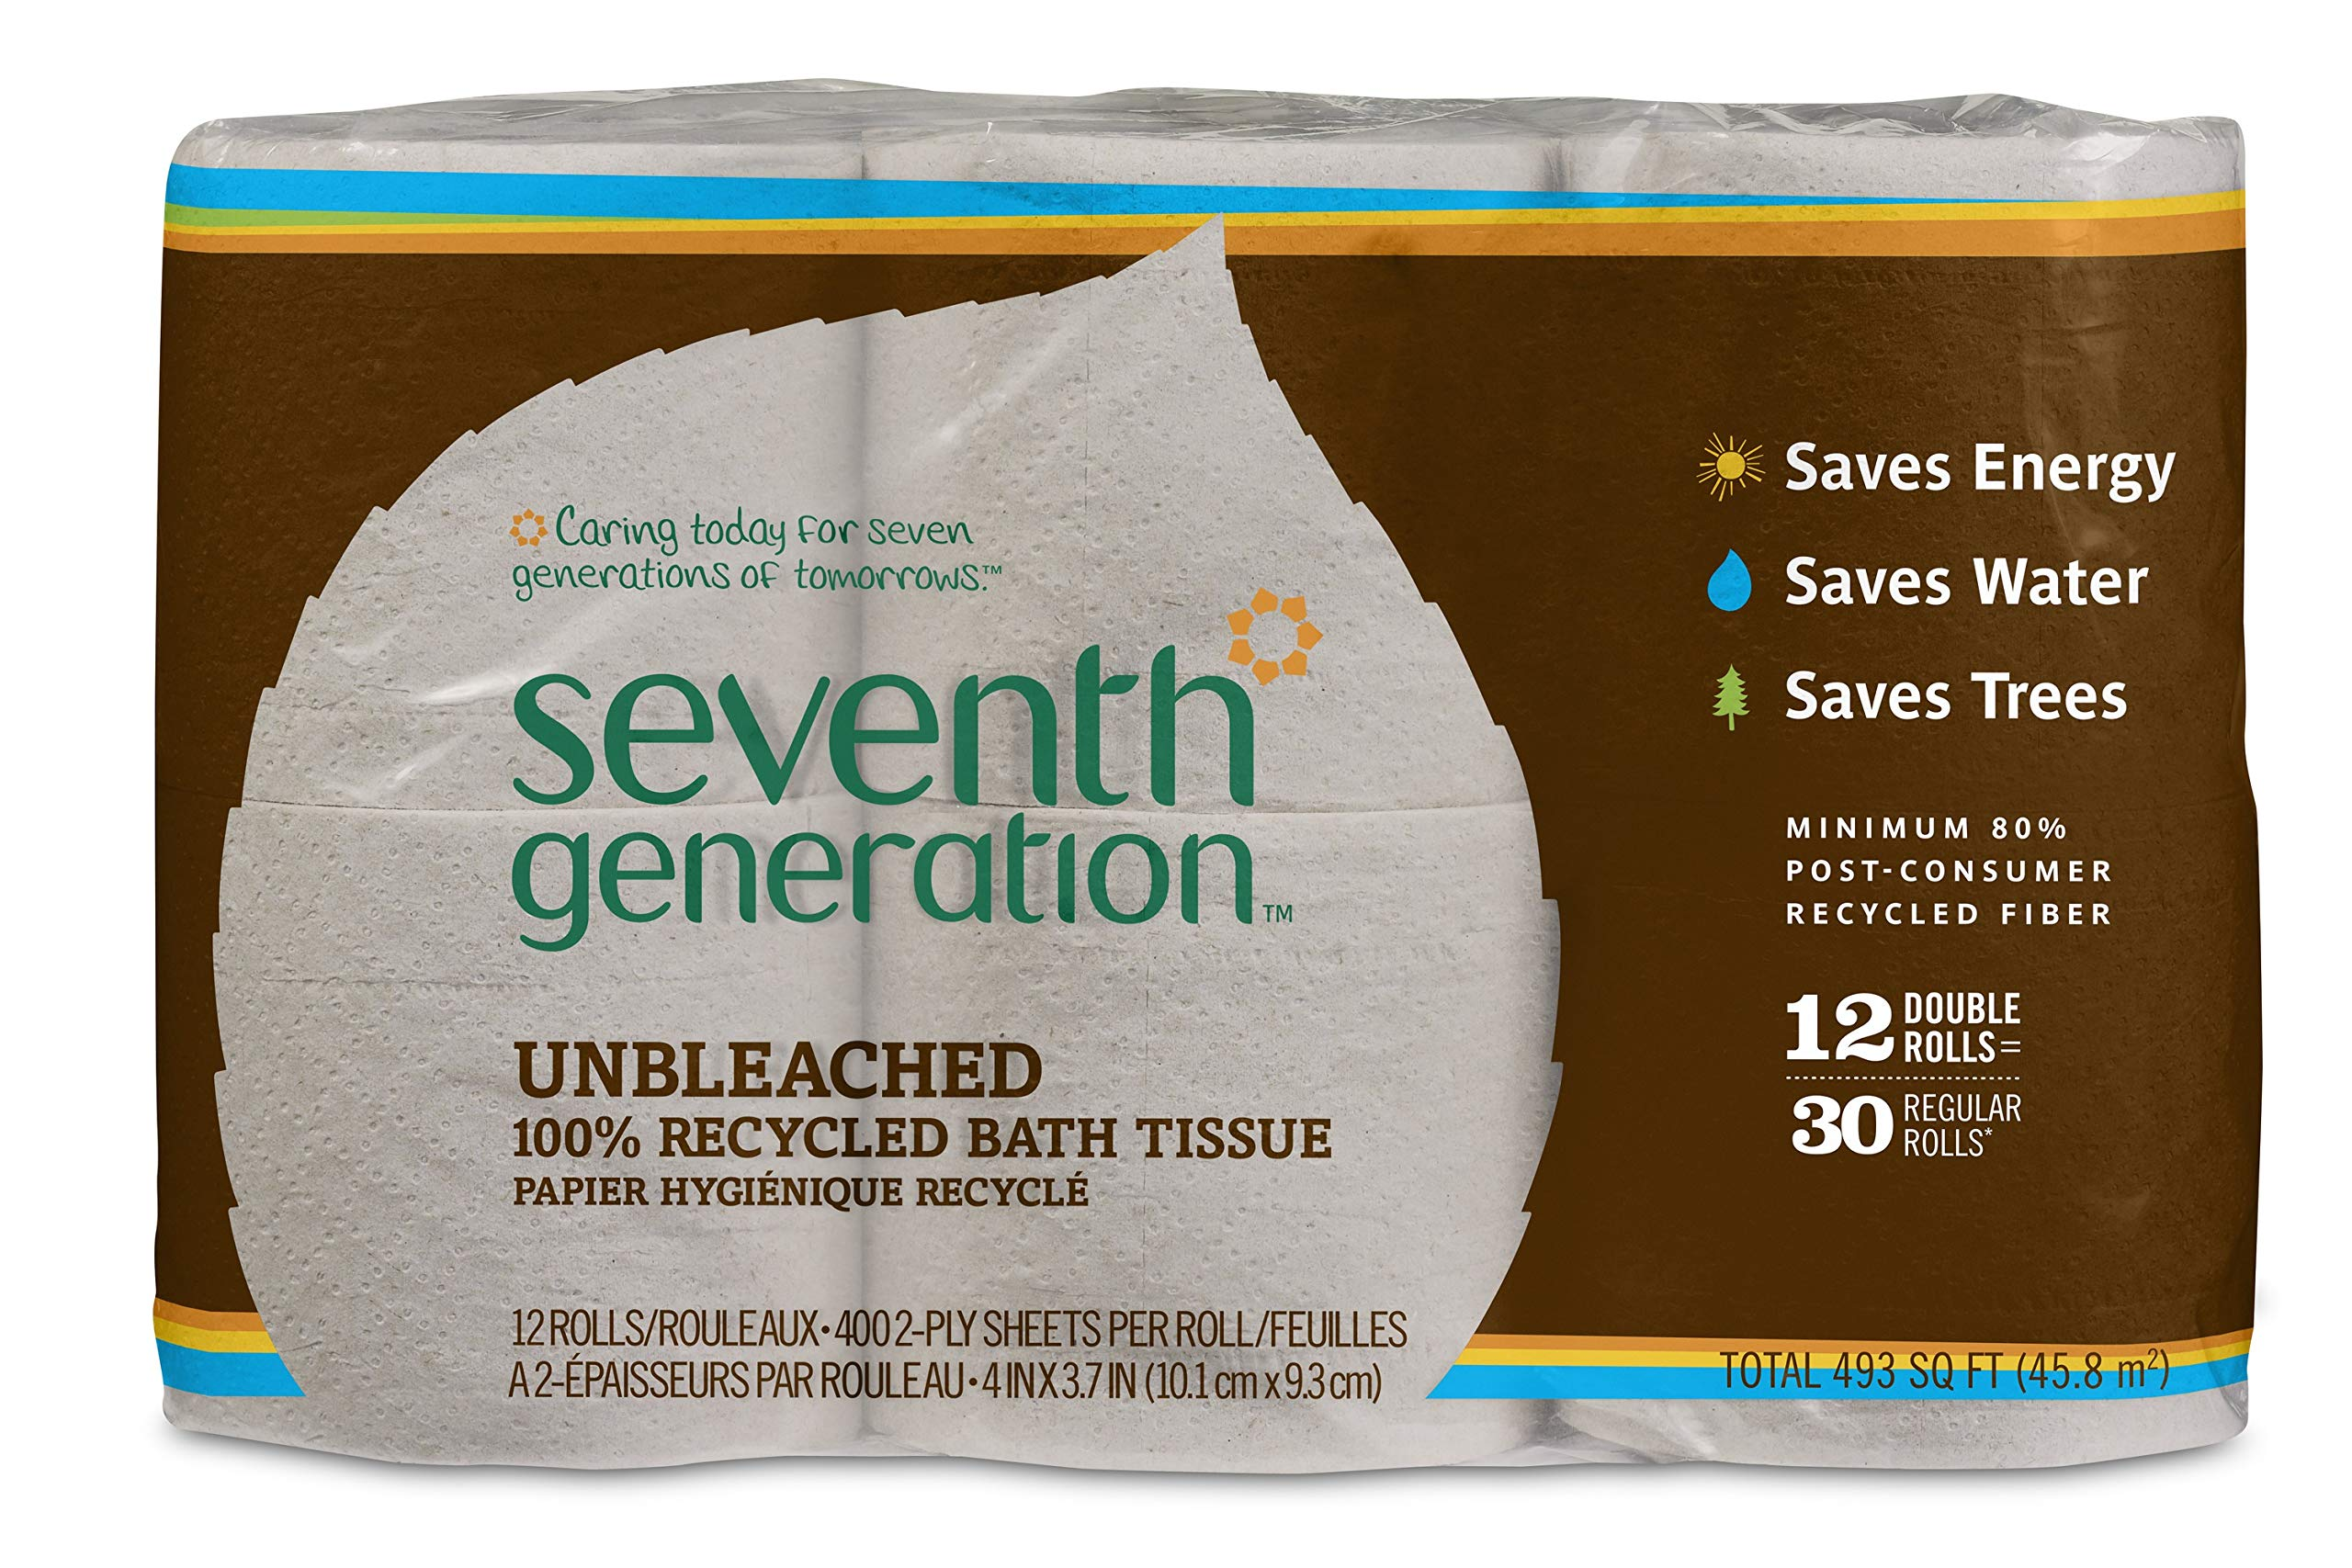 Seventh Generation Unbleached Bathroom Tissue Roll, 12-Count (Pack of 4) by Seventh Generation (Image #5)